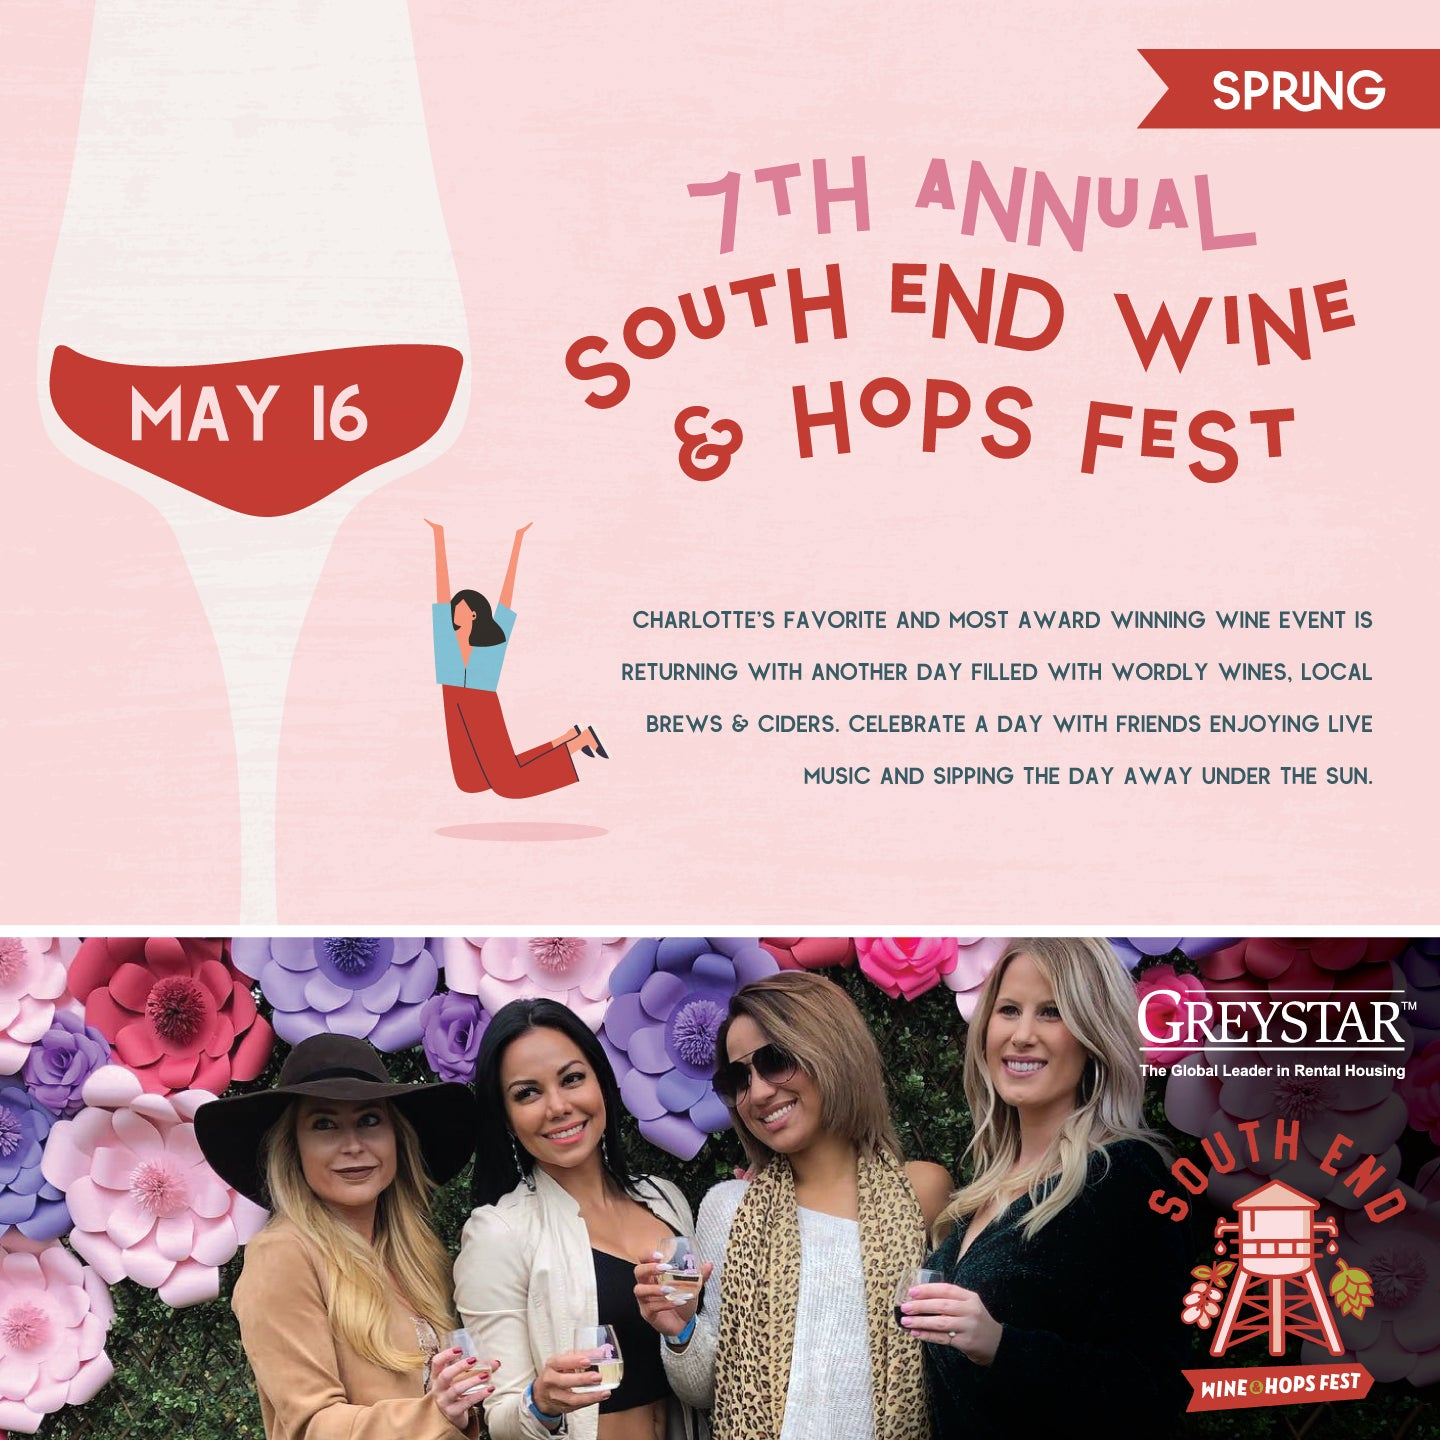 7th Annual Spring South End Wine and Hops Fest - Sunday